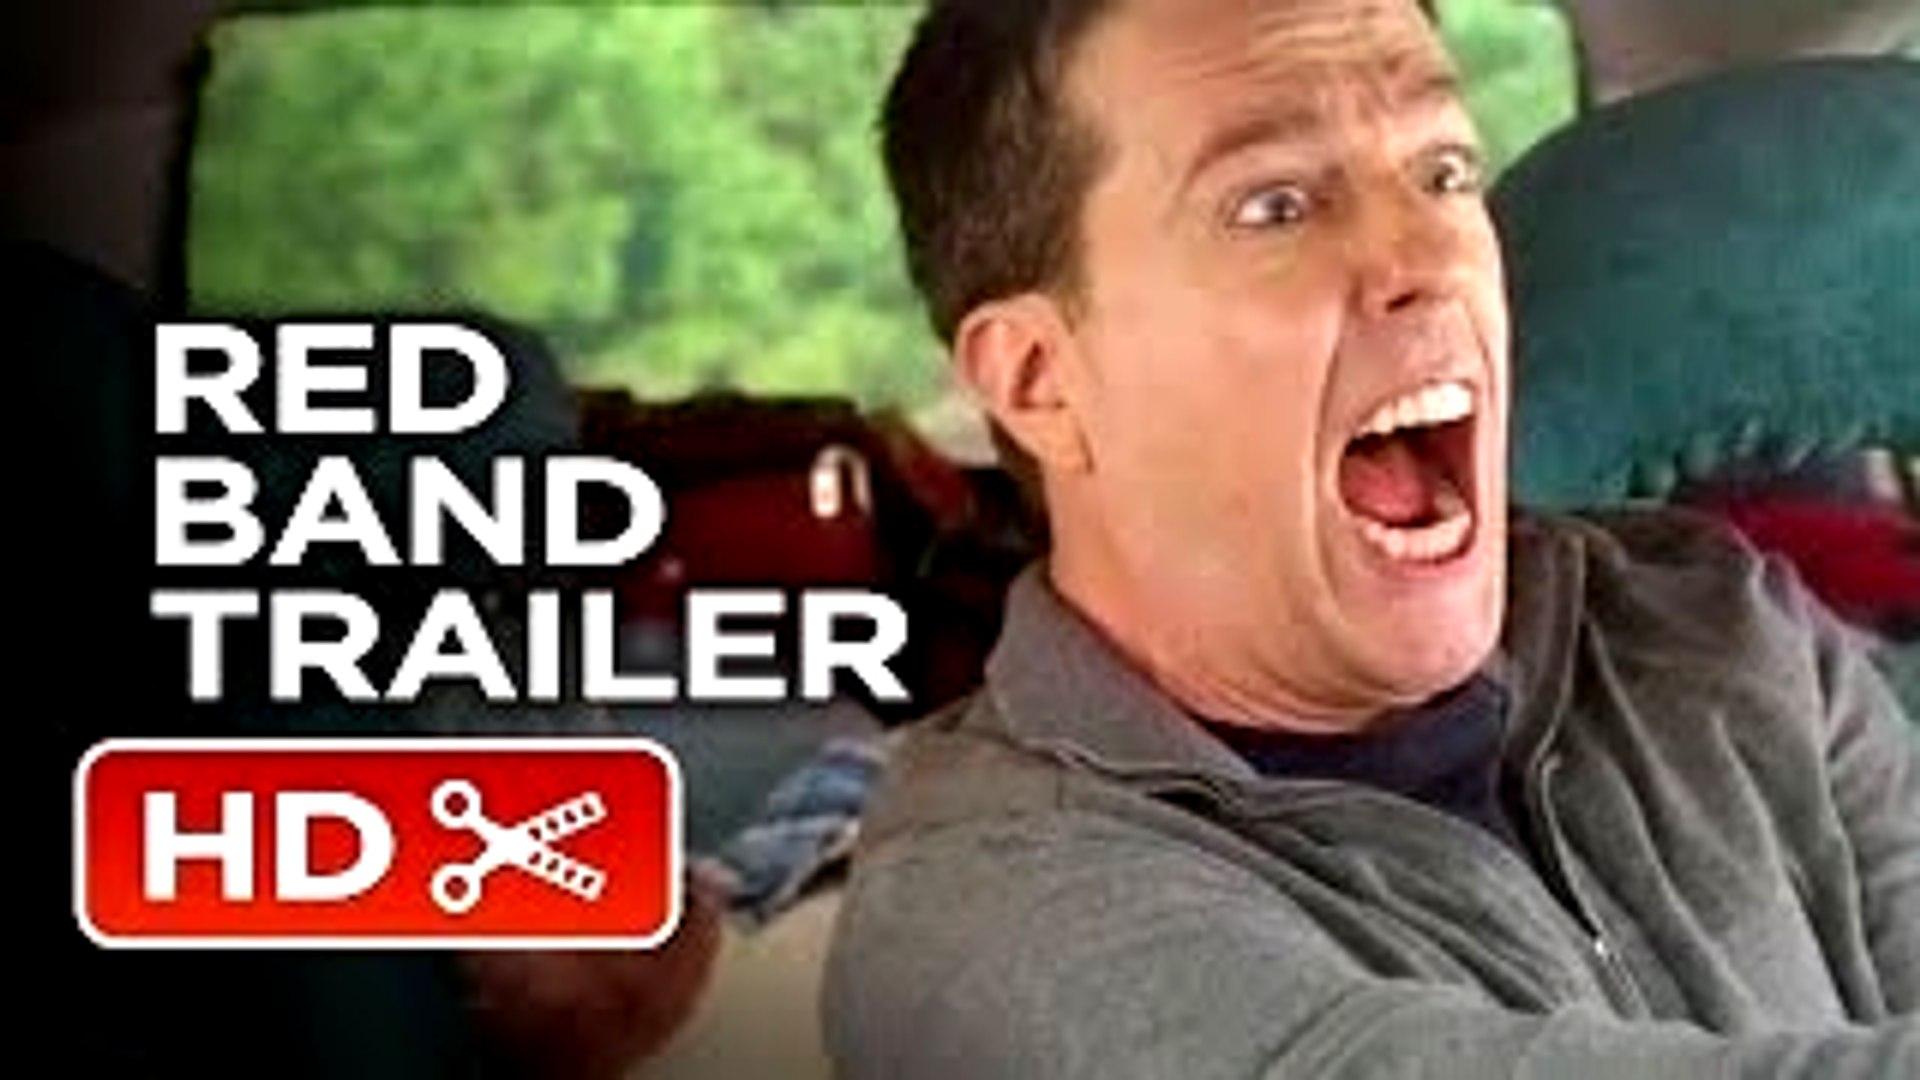 Vacation Official Red Band Trailer #1 (2015) - Ed Helms, Christina Applegate Movie HD